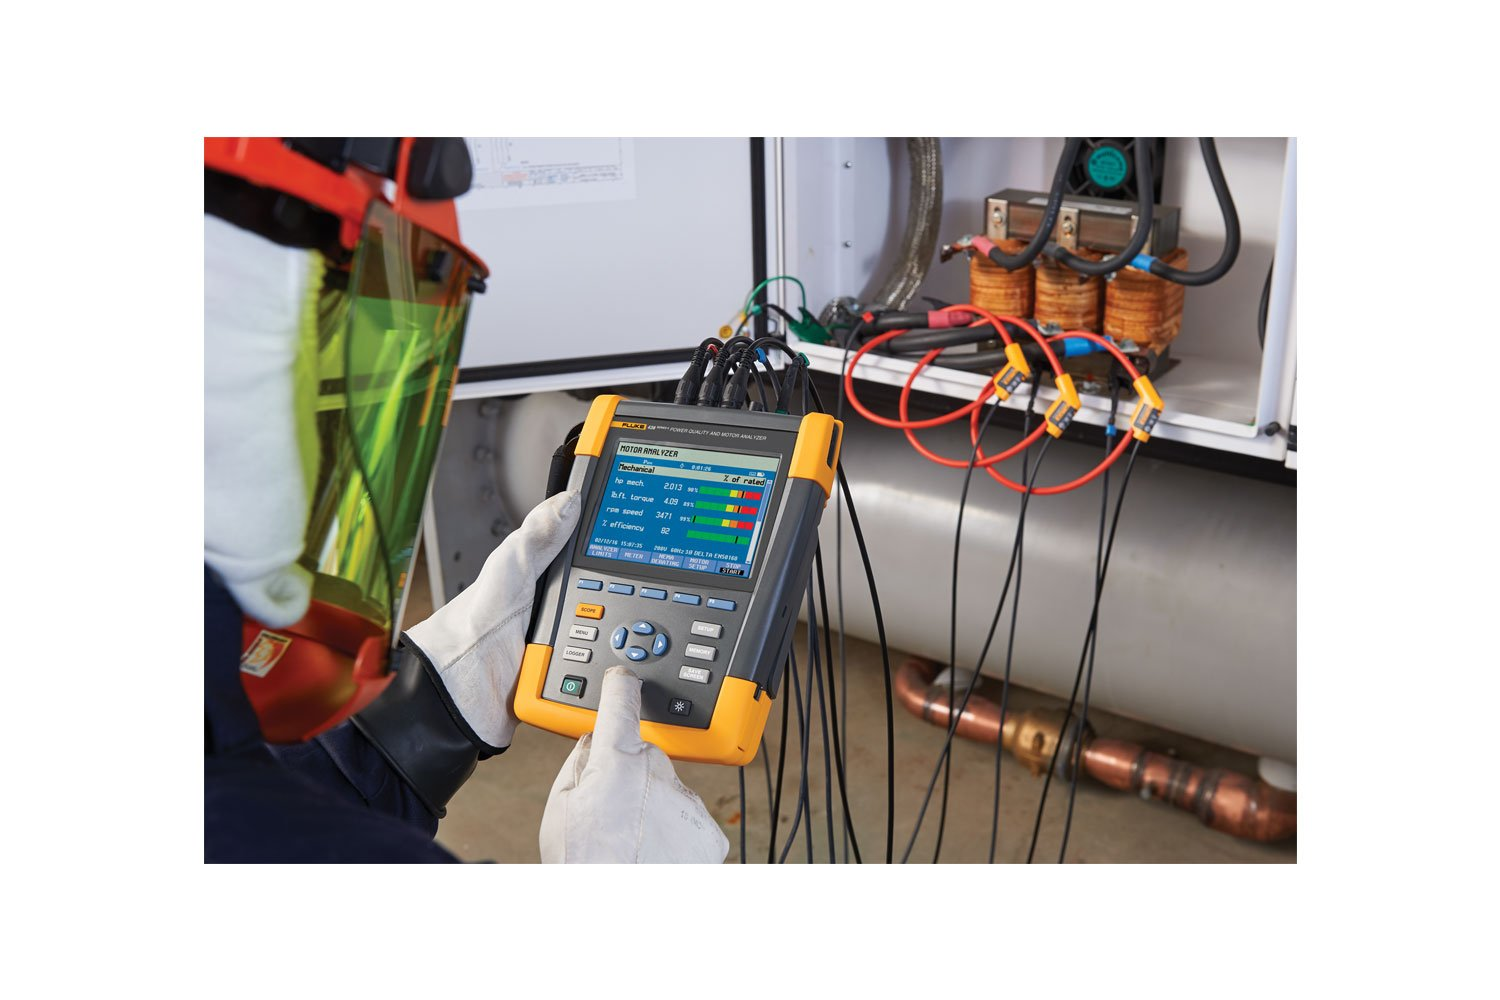 Fluke 438 Ii Motor Power Quality Analyzer Electrical And Mechanical Classes Will Help Prepare Read Full